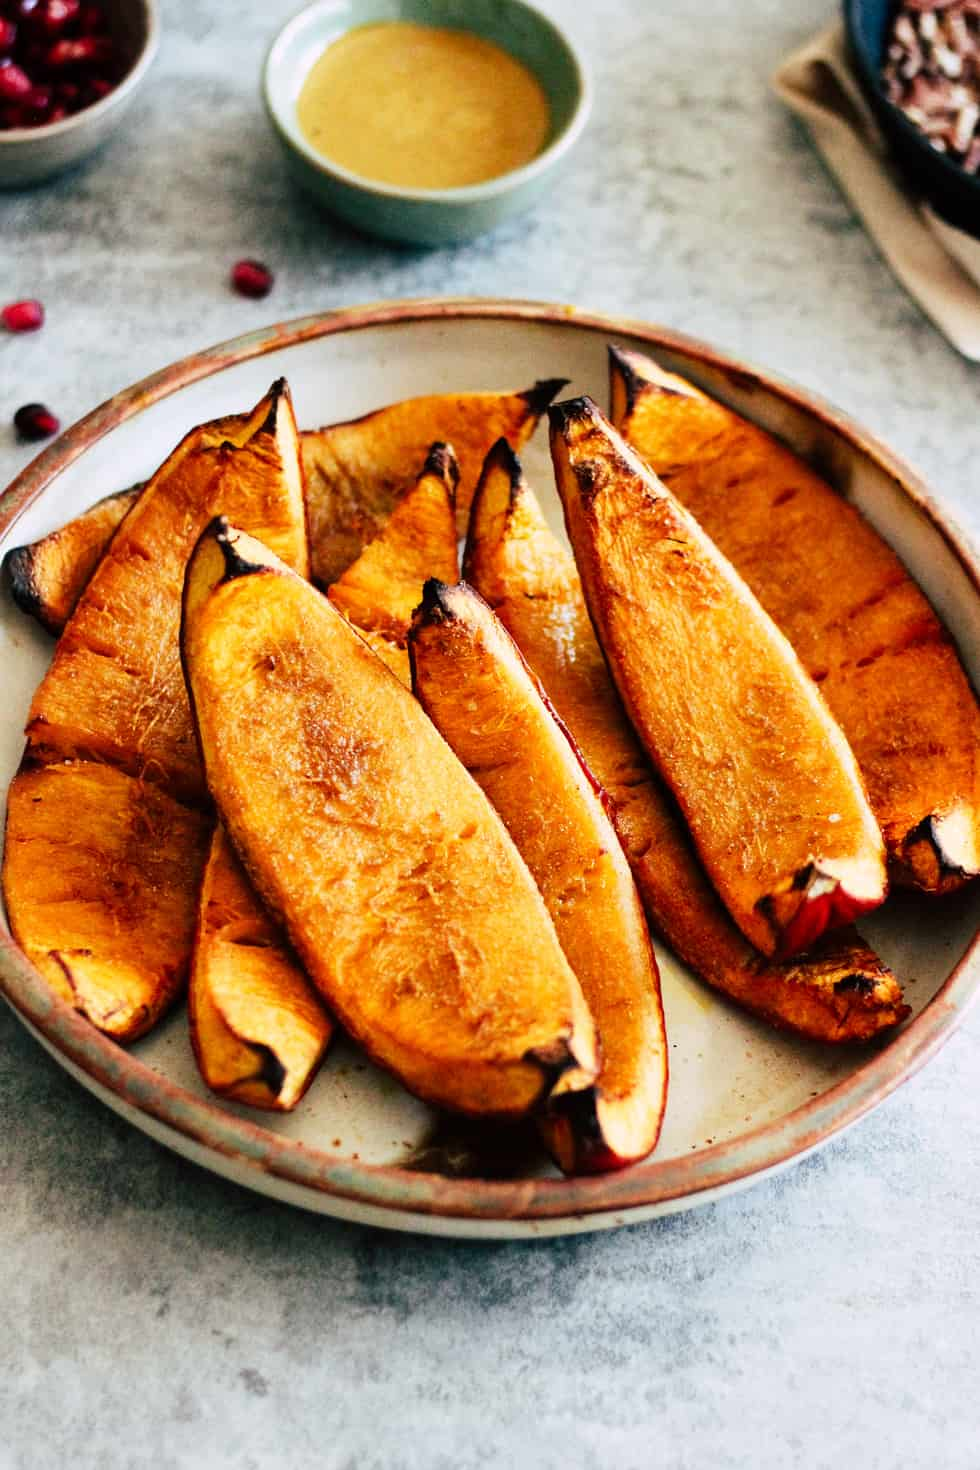 Roasted pumpkin wedges in ceramic dish.